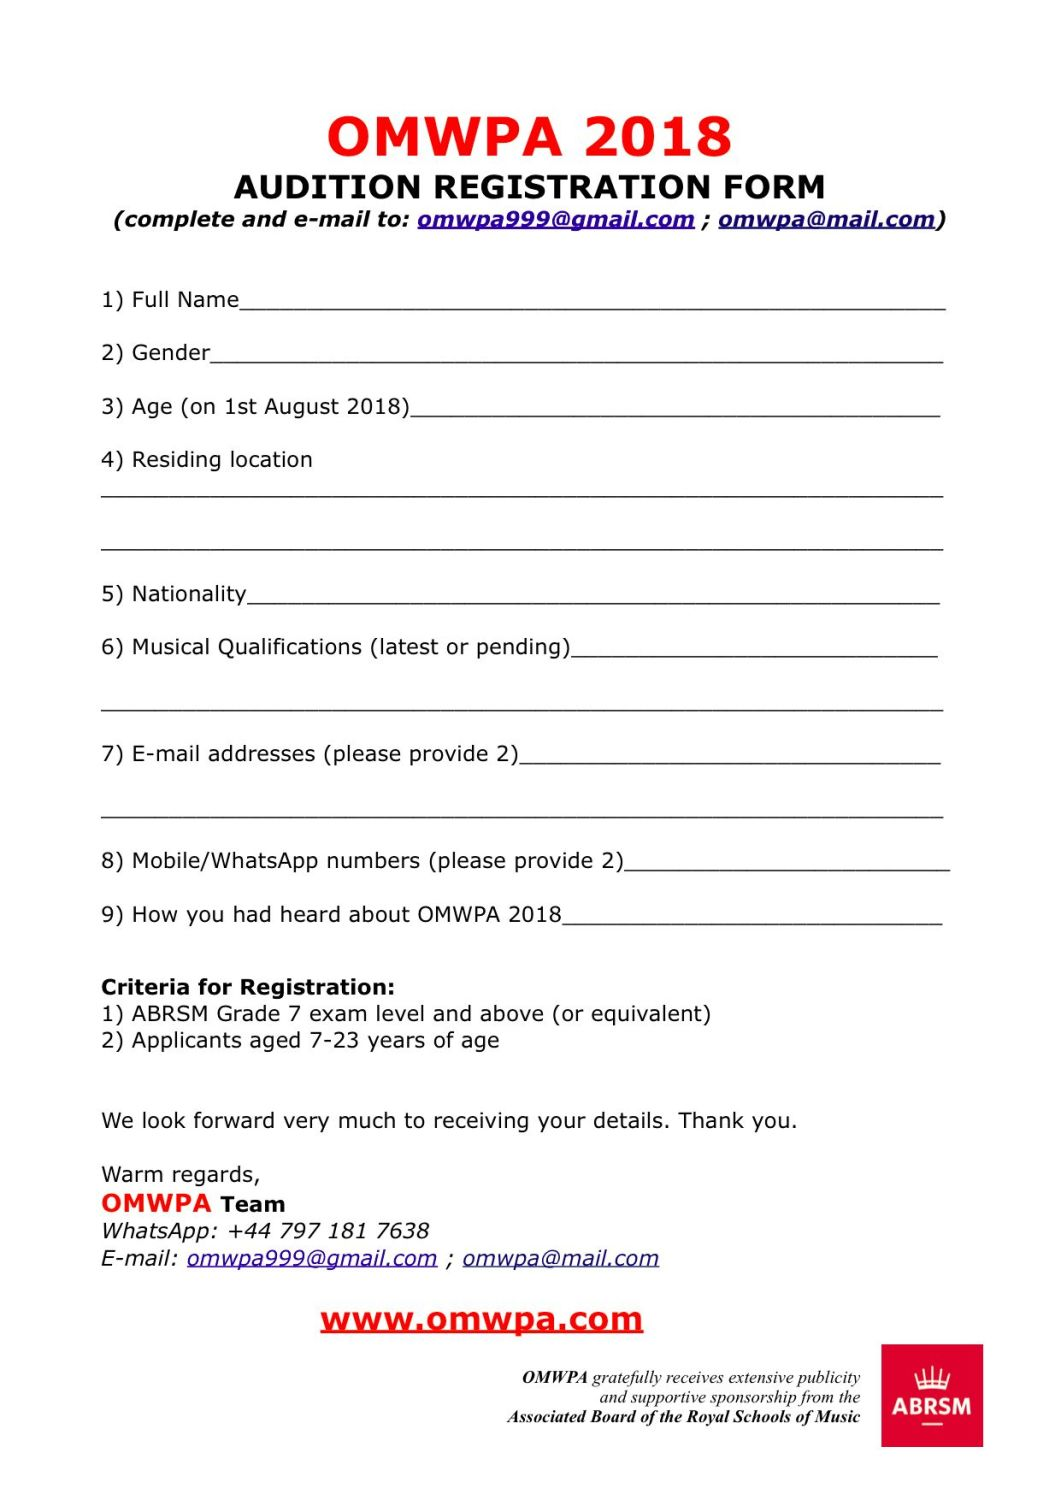 OMWPA 2018 - Audition Registration Form